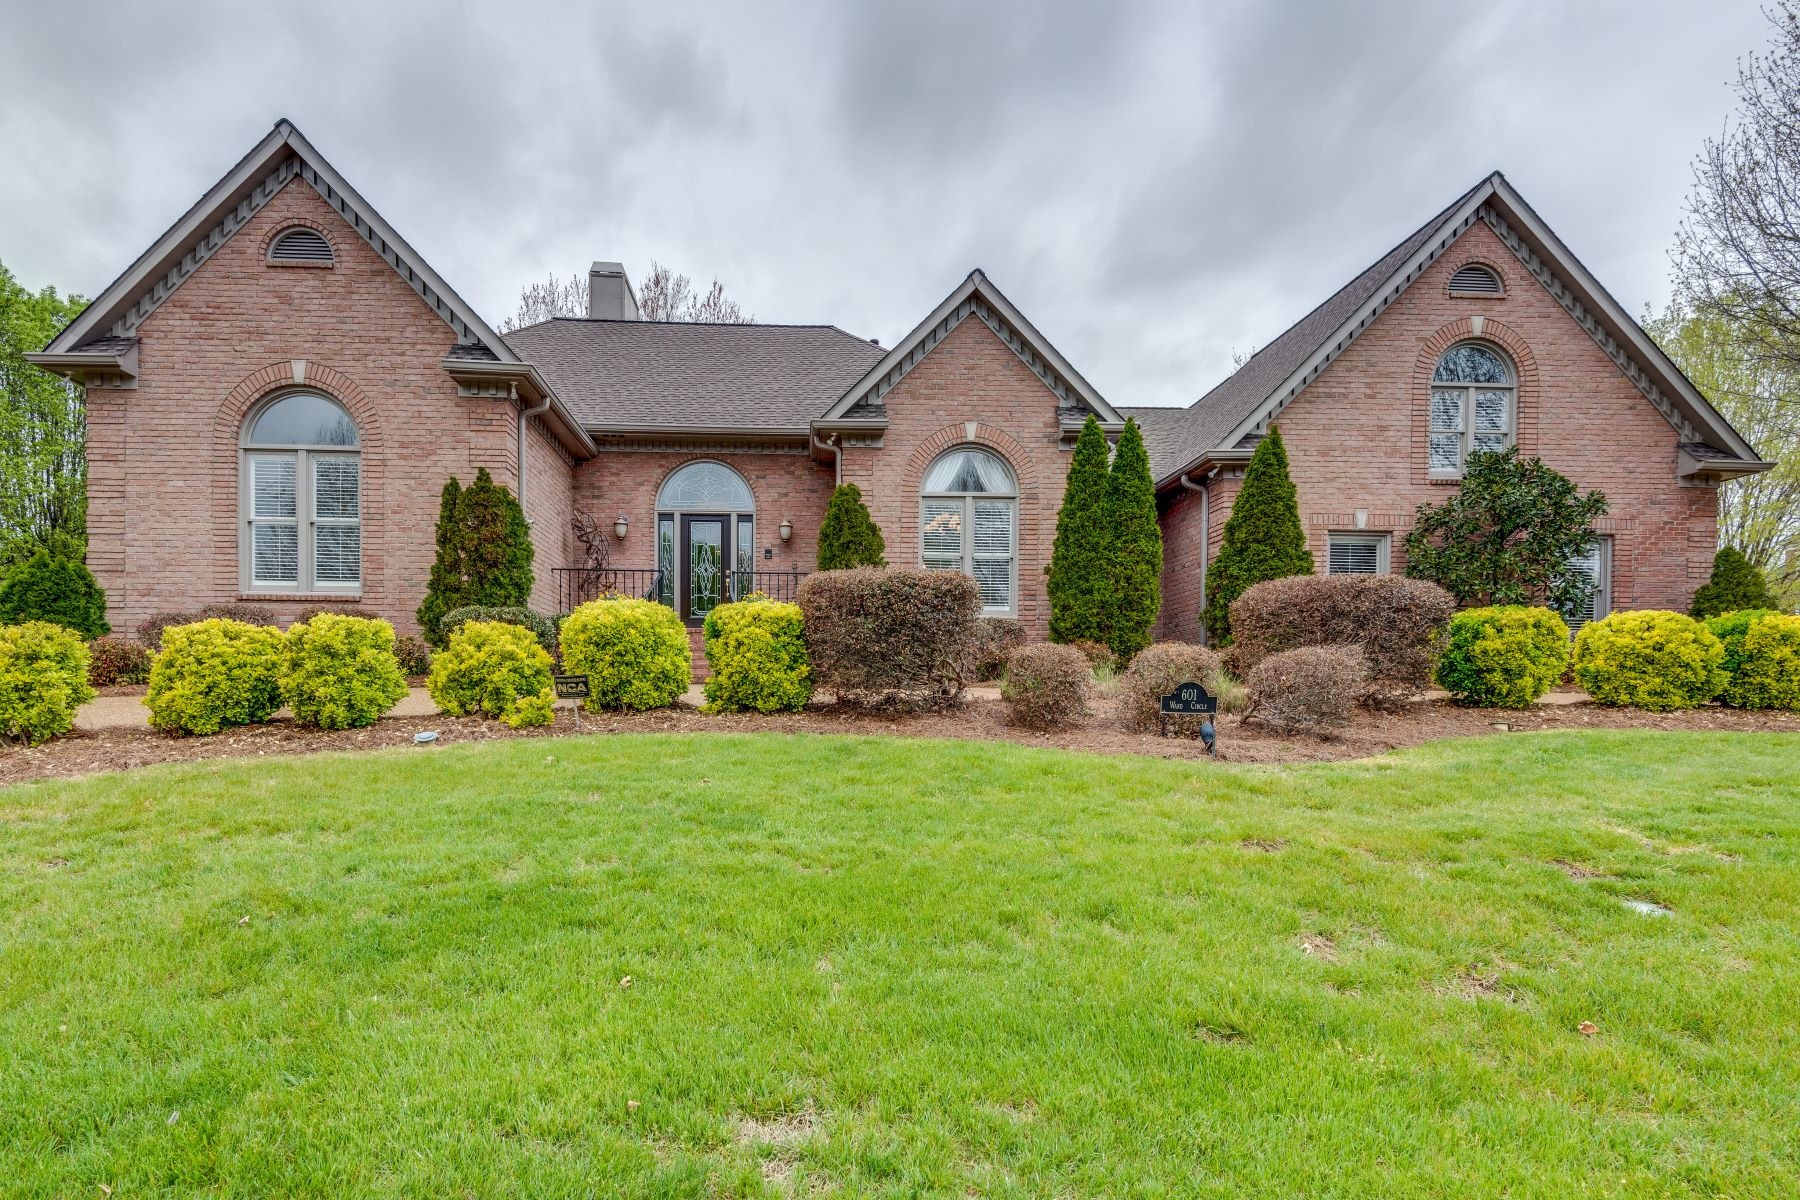 Single Family Home for Sale at A Hidden Gem in Beautiful Brandywine Pointe! 601 Ward Circle Old Hickory, Tennessee 37138 United States